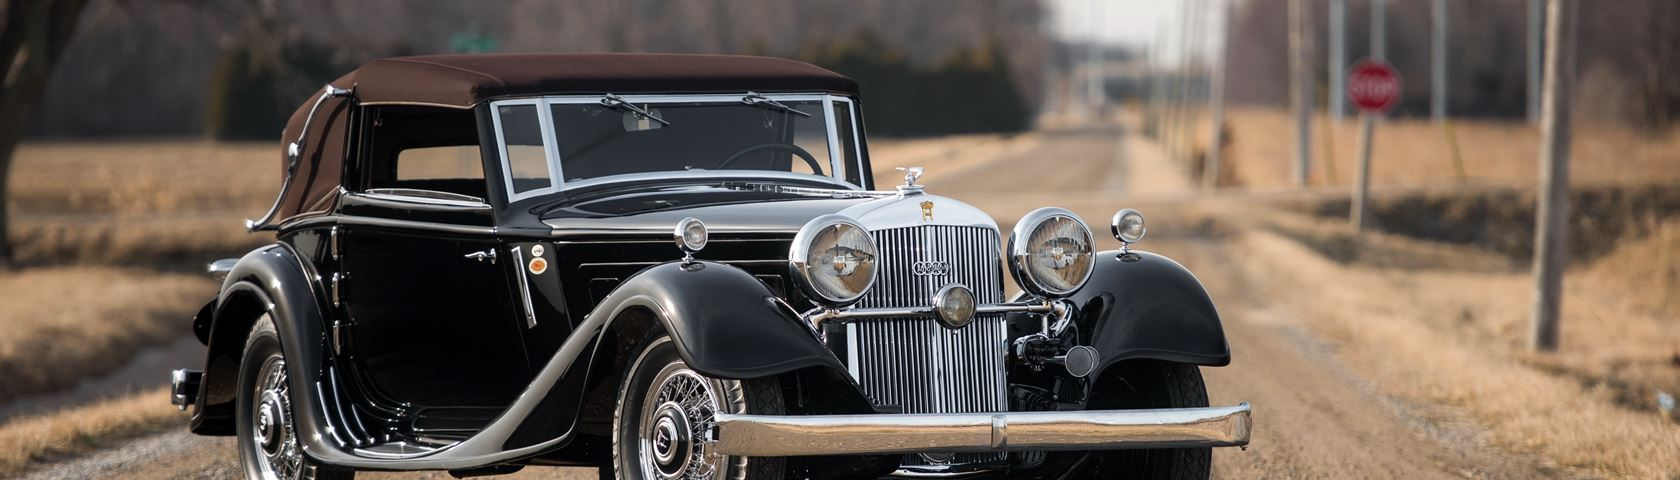 1931 Horch Cabriolet Convertible